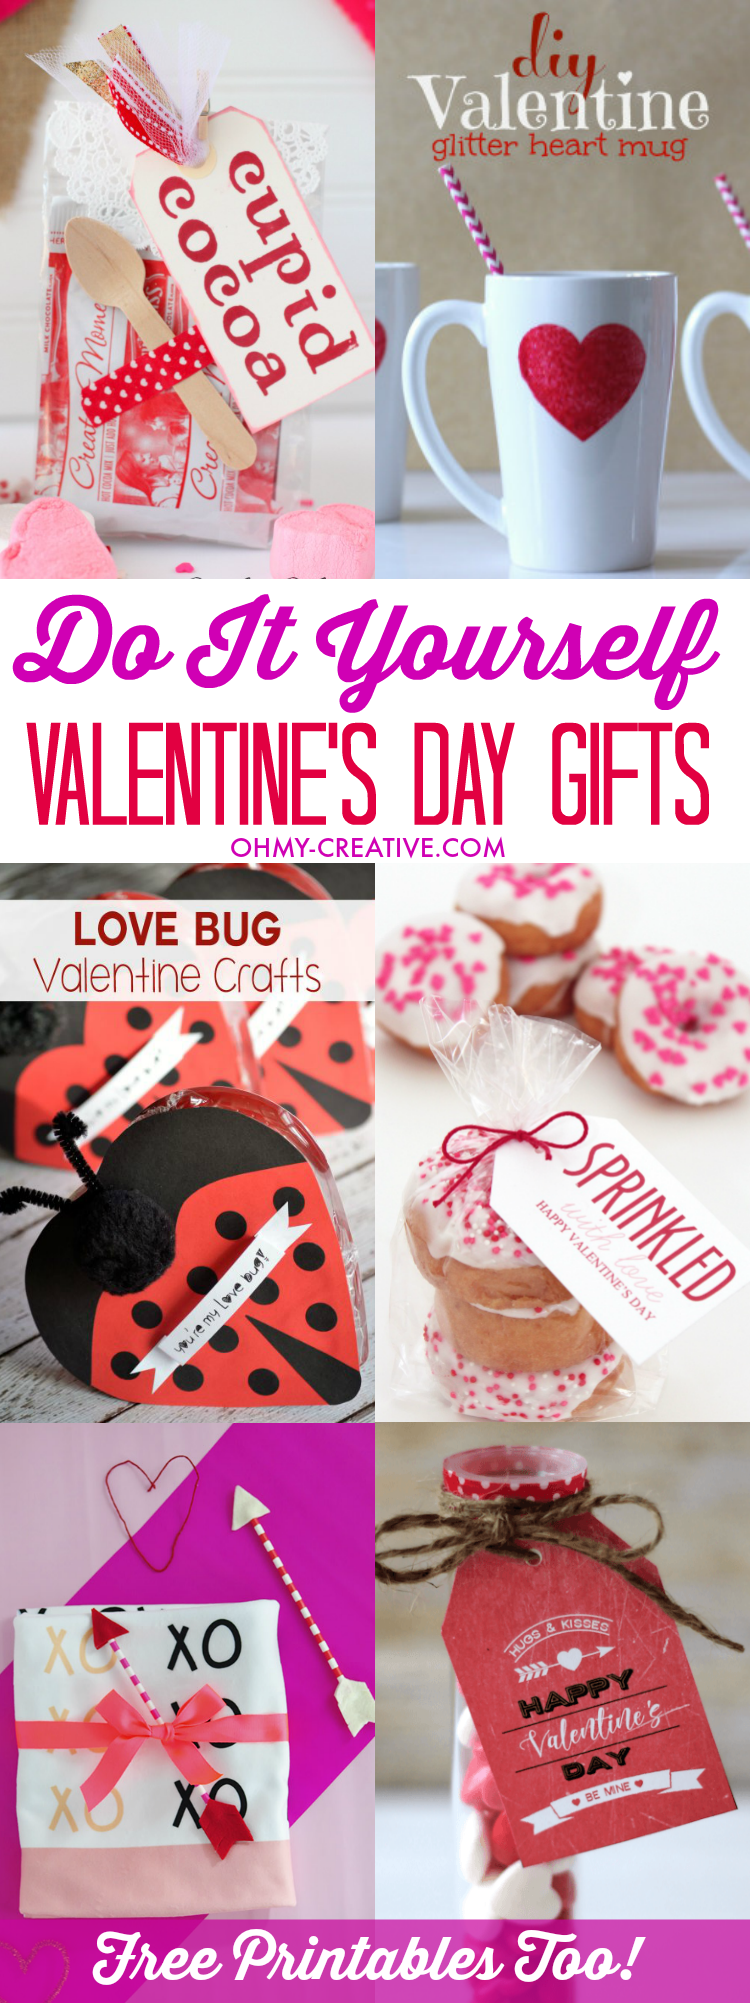 Do it yourself valentines day gifts regalitos do it yourself valentines day gifts oh my creative solutioingenieria Images